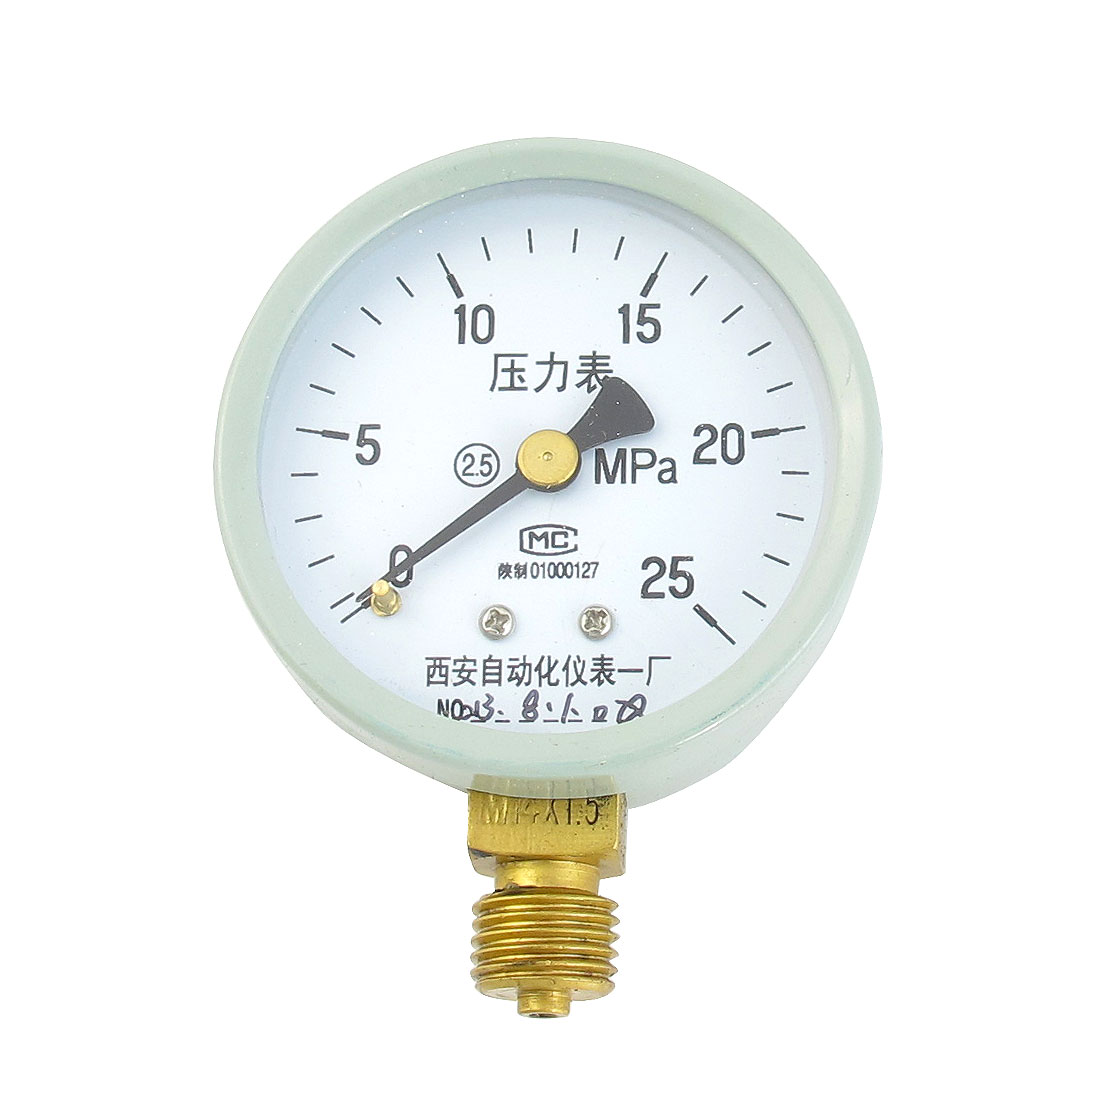 1/4PT Male Threaded 0-25Mpa Pneumatic Air Pressure Measuring Gauge Light Gray